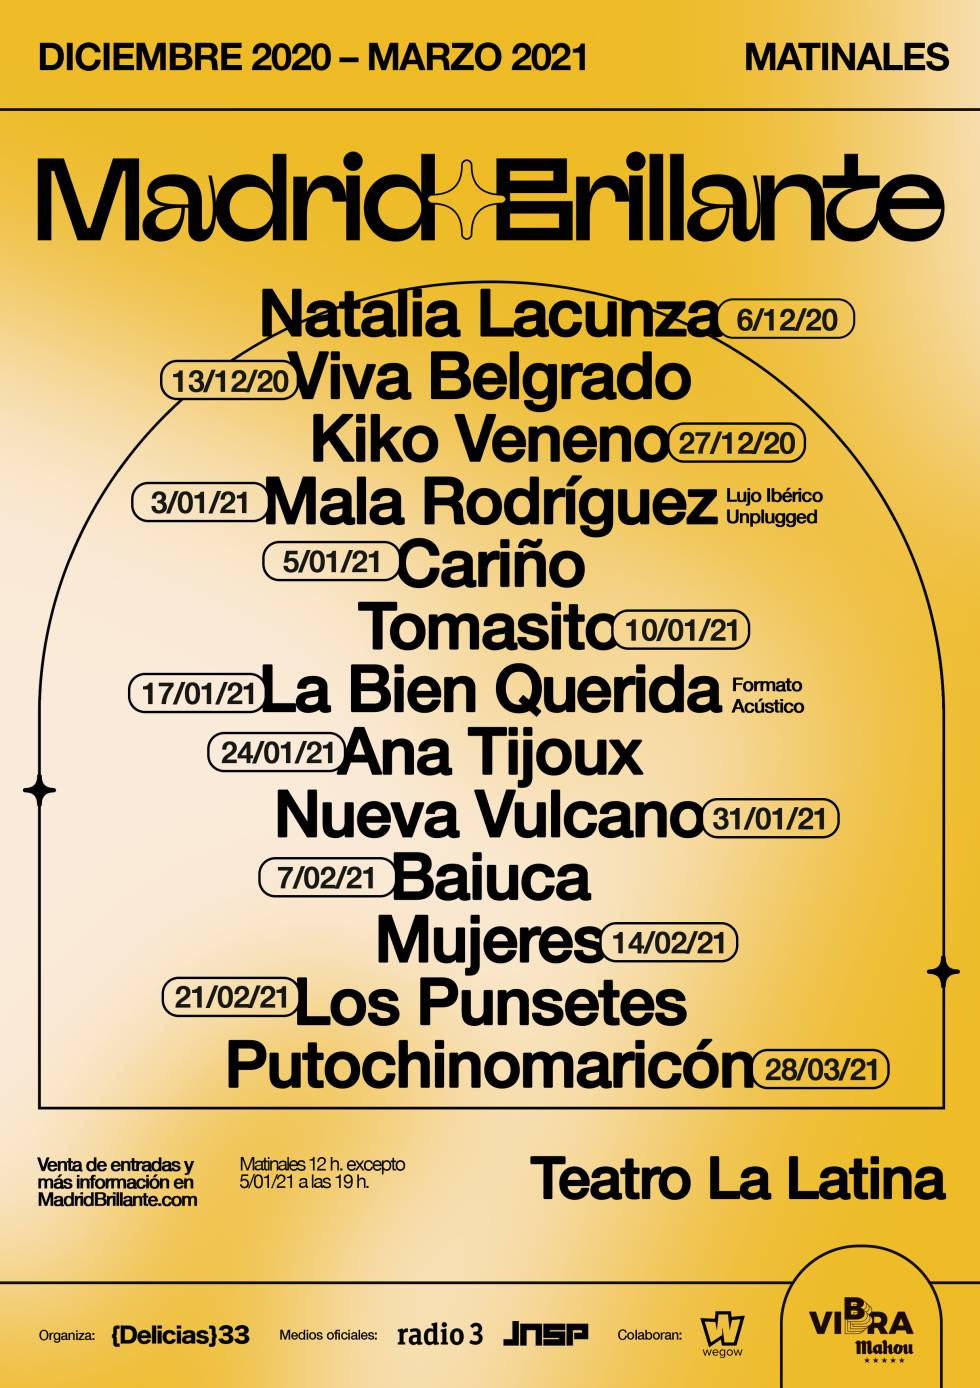 The Madrid Brillante festival will once again fill the city with concerts